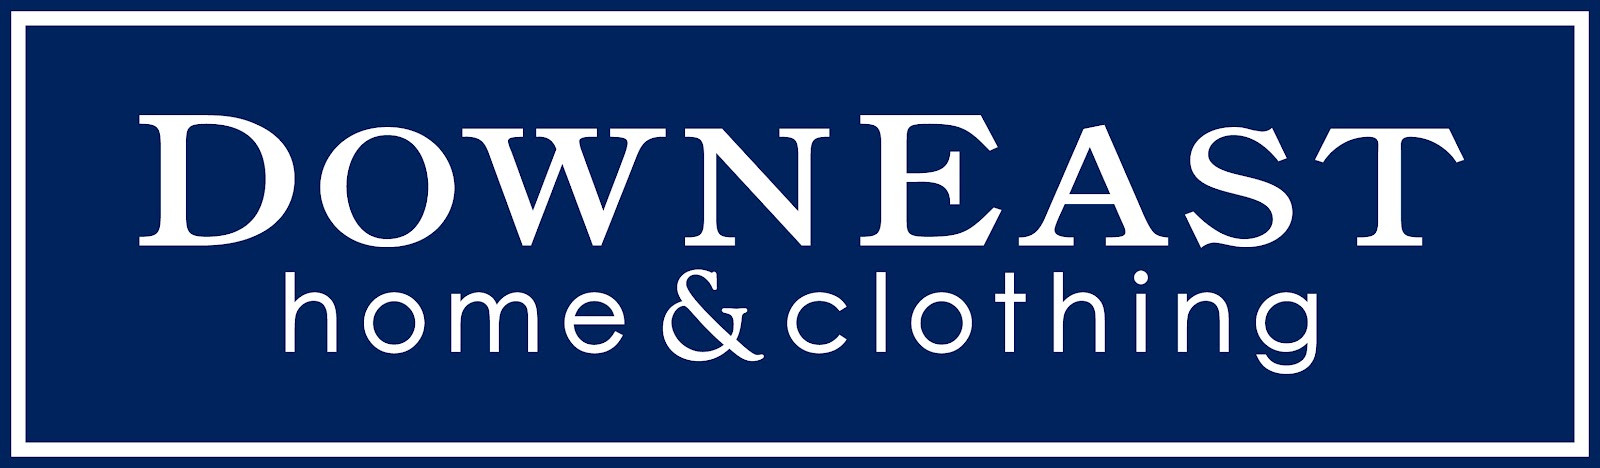 DownEast Home & Clothing - hi res logo.j